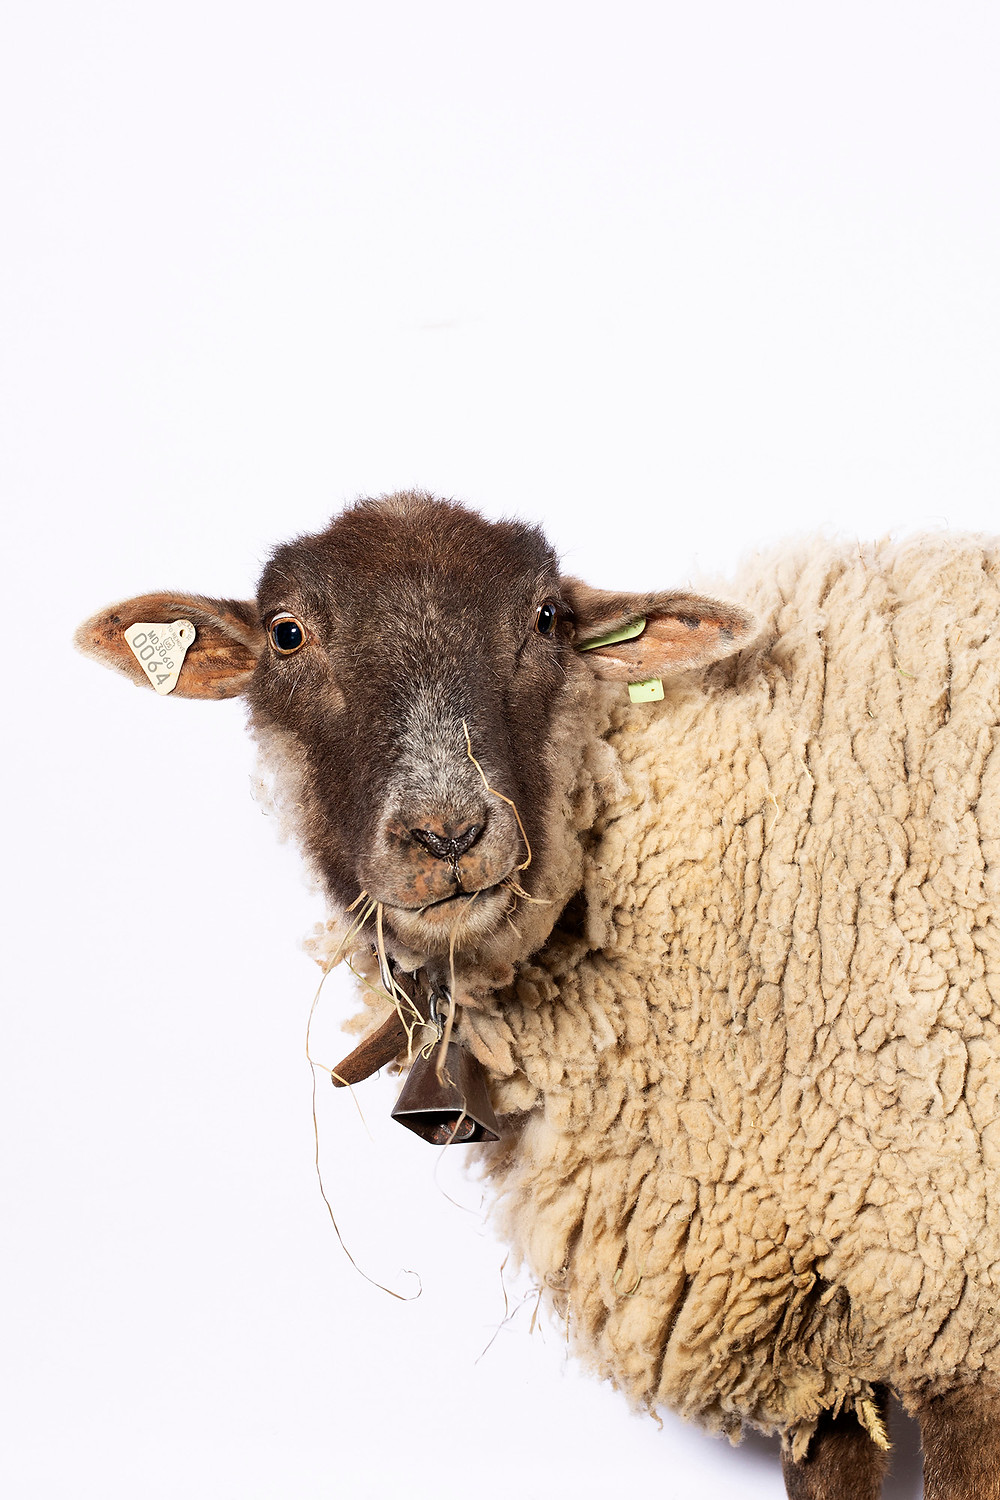 Hog Island sheep wether, Sir Nigel, munches on some hay in front of a white studio backdrop